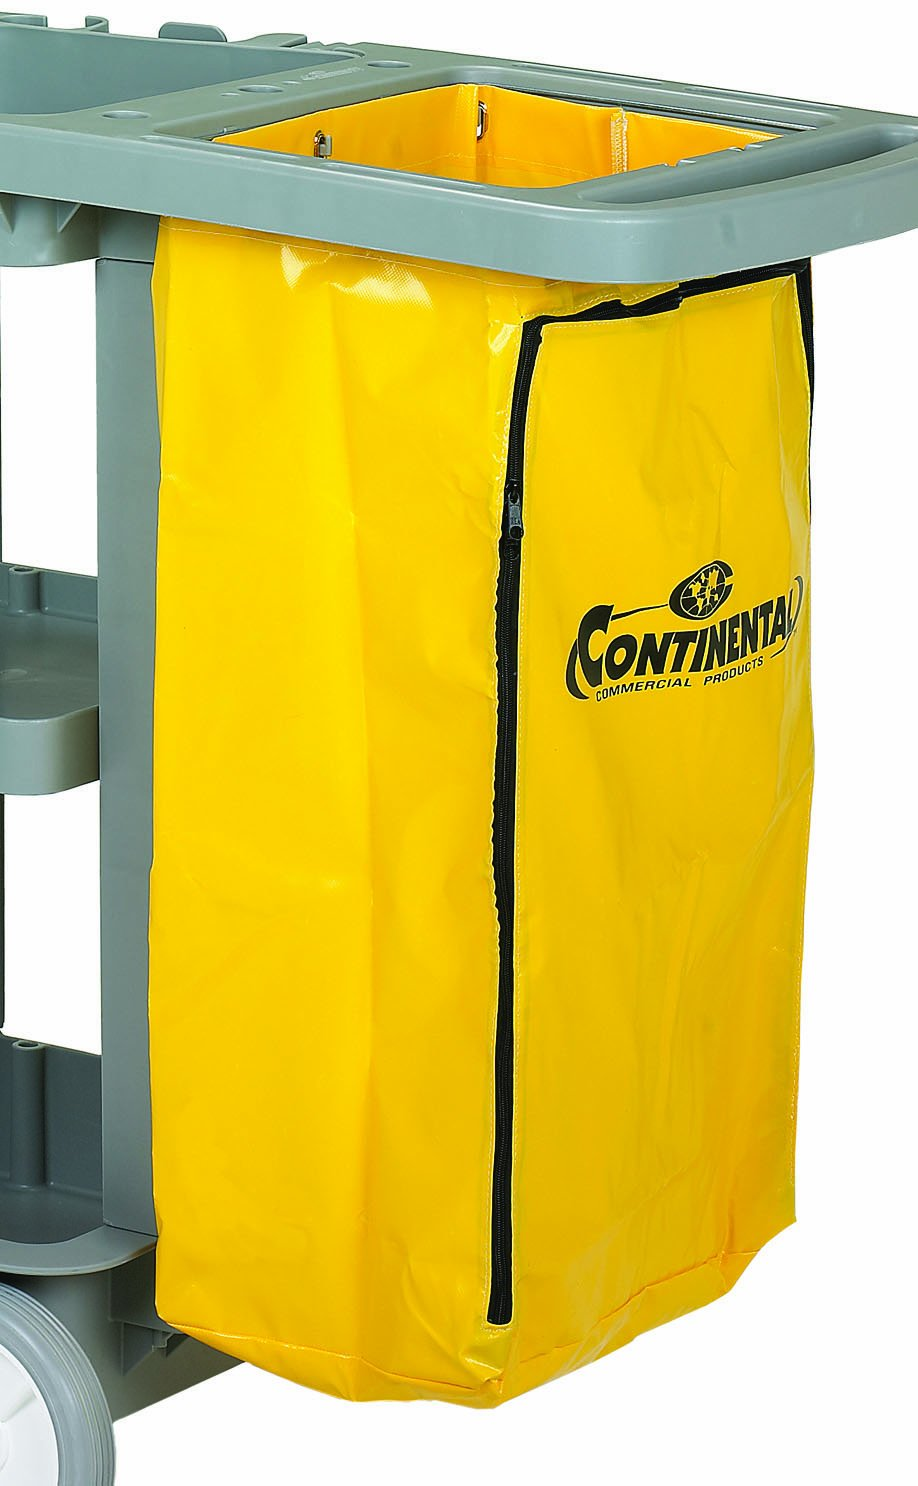 Continental 188YW Yellow Zippered Vinyl Replacement Bag for 182/184/186 Cart by CONTINENTAL